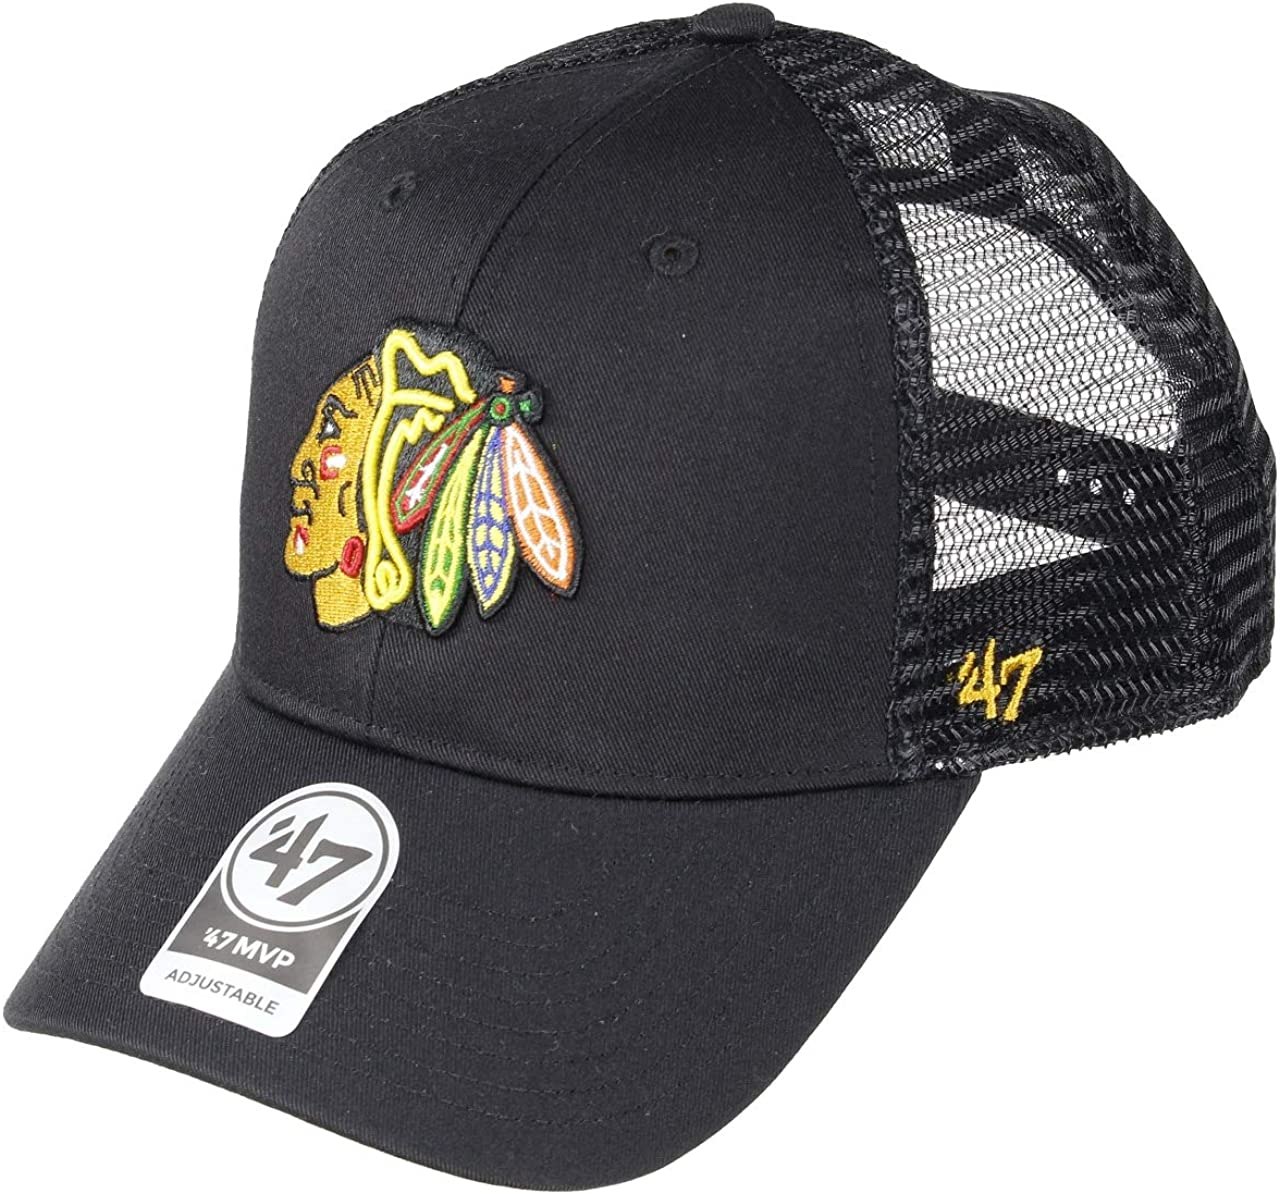 Gorra trucker negra de Chicago Blackhawks NHL MVP Bransonde 47 ...